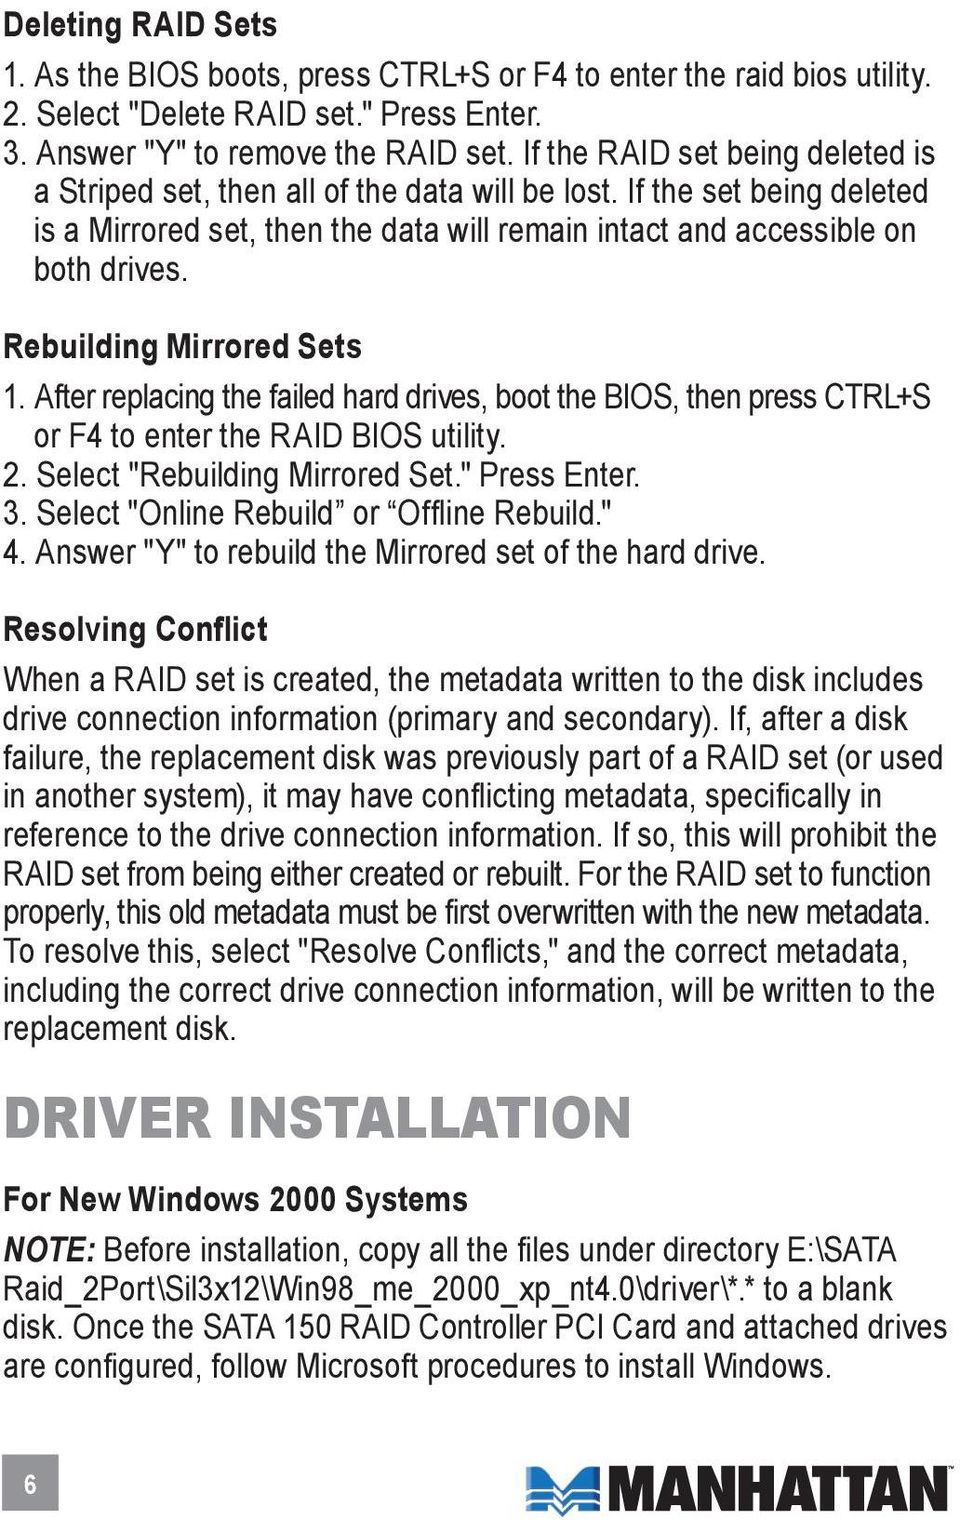 "Rebuilding Mirrored Sets 1. After replacing the failed hard drives, boot the BIOS, then press CTRL+S or F4 to enter the raid bios utility. 2. Select ""Rebuilding Mirrored Set."" Press Enter. 3."